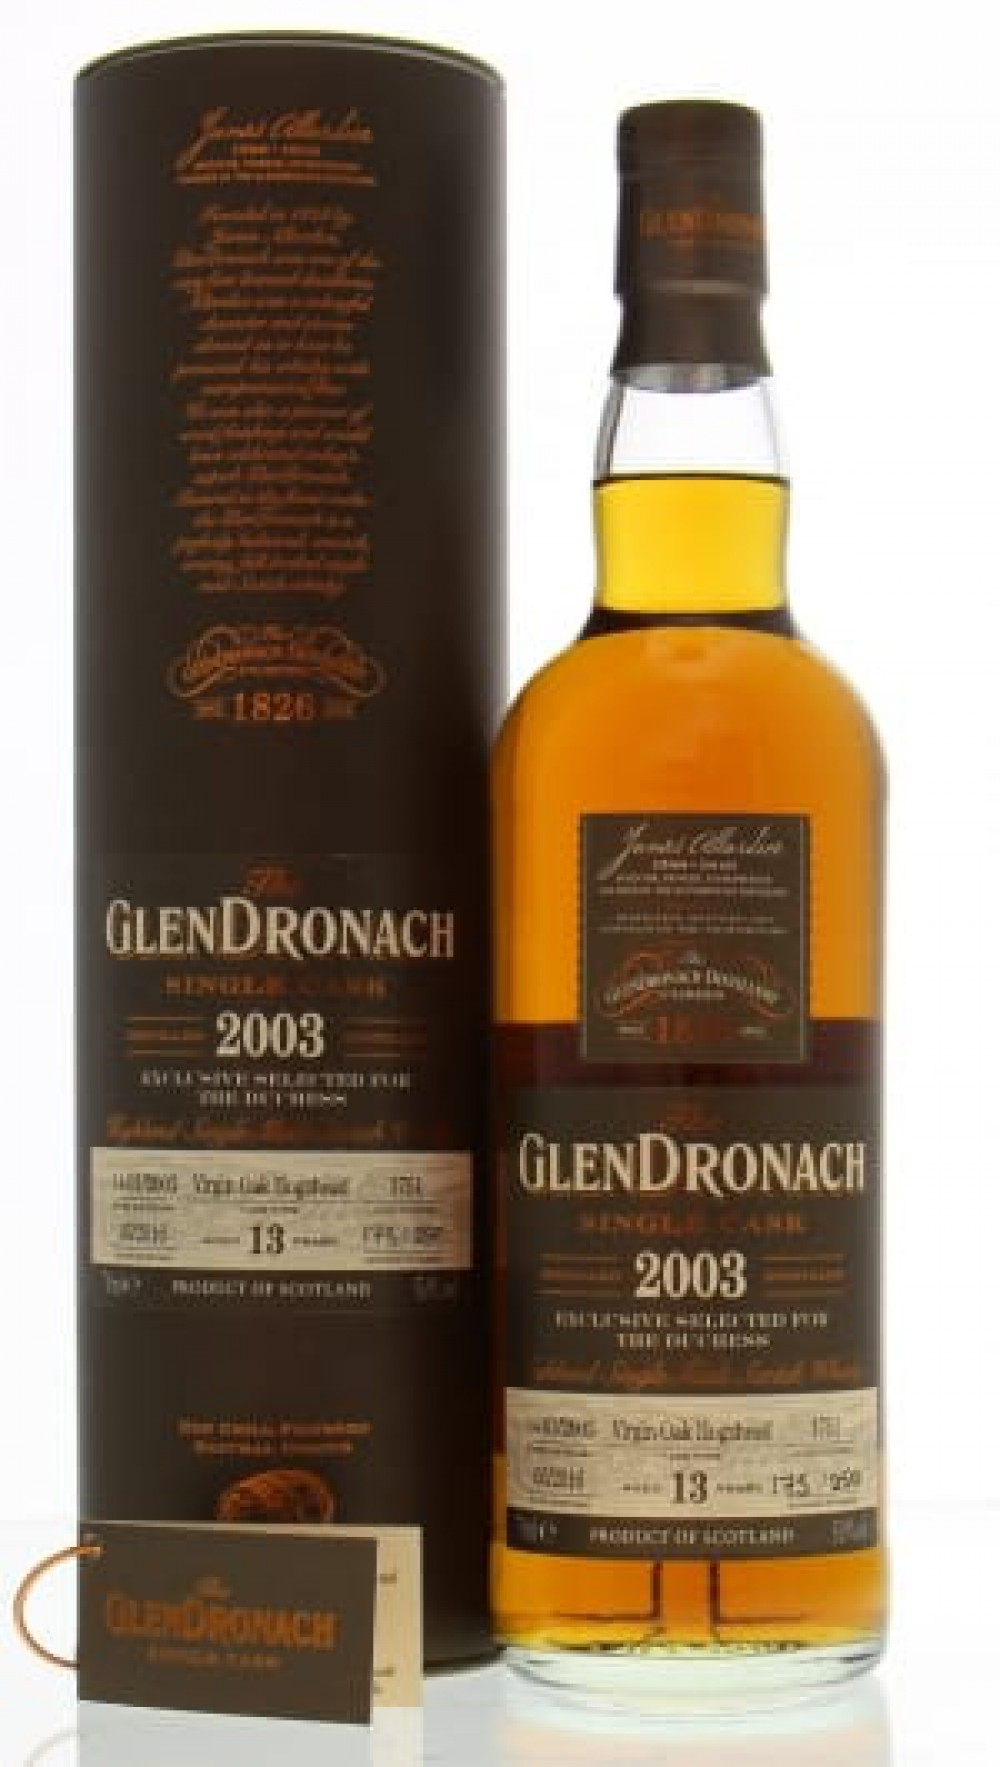 Glendronach Exclusively selected for the Duchess